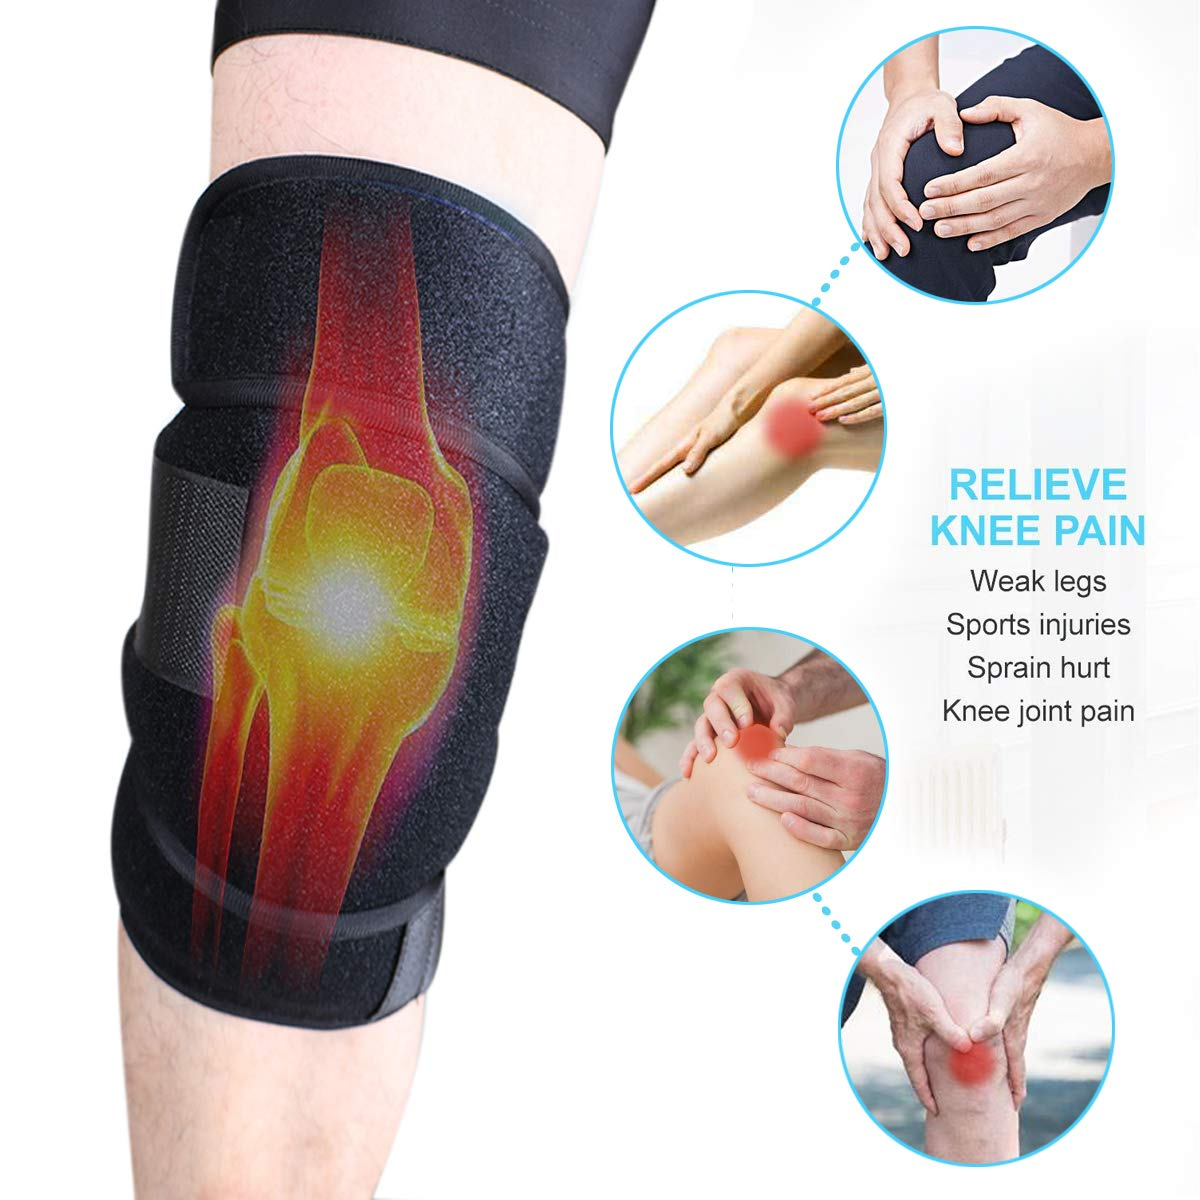 Reusable Gel Ice Pack Wrap Knee Elbow Hot Cold Therapy Microwavable Heating Instant First Aid Support Brace Adjustable Compression Sleeve Pain Relief Sport Injurious Bursitis Rheumatoid Arthritis by DGYAO (Image #3)